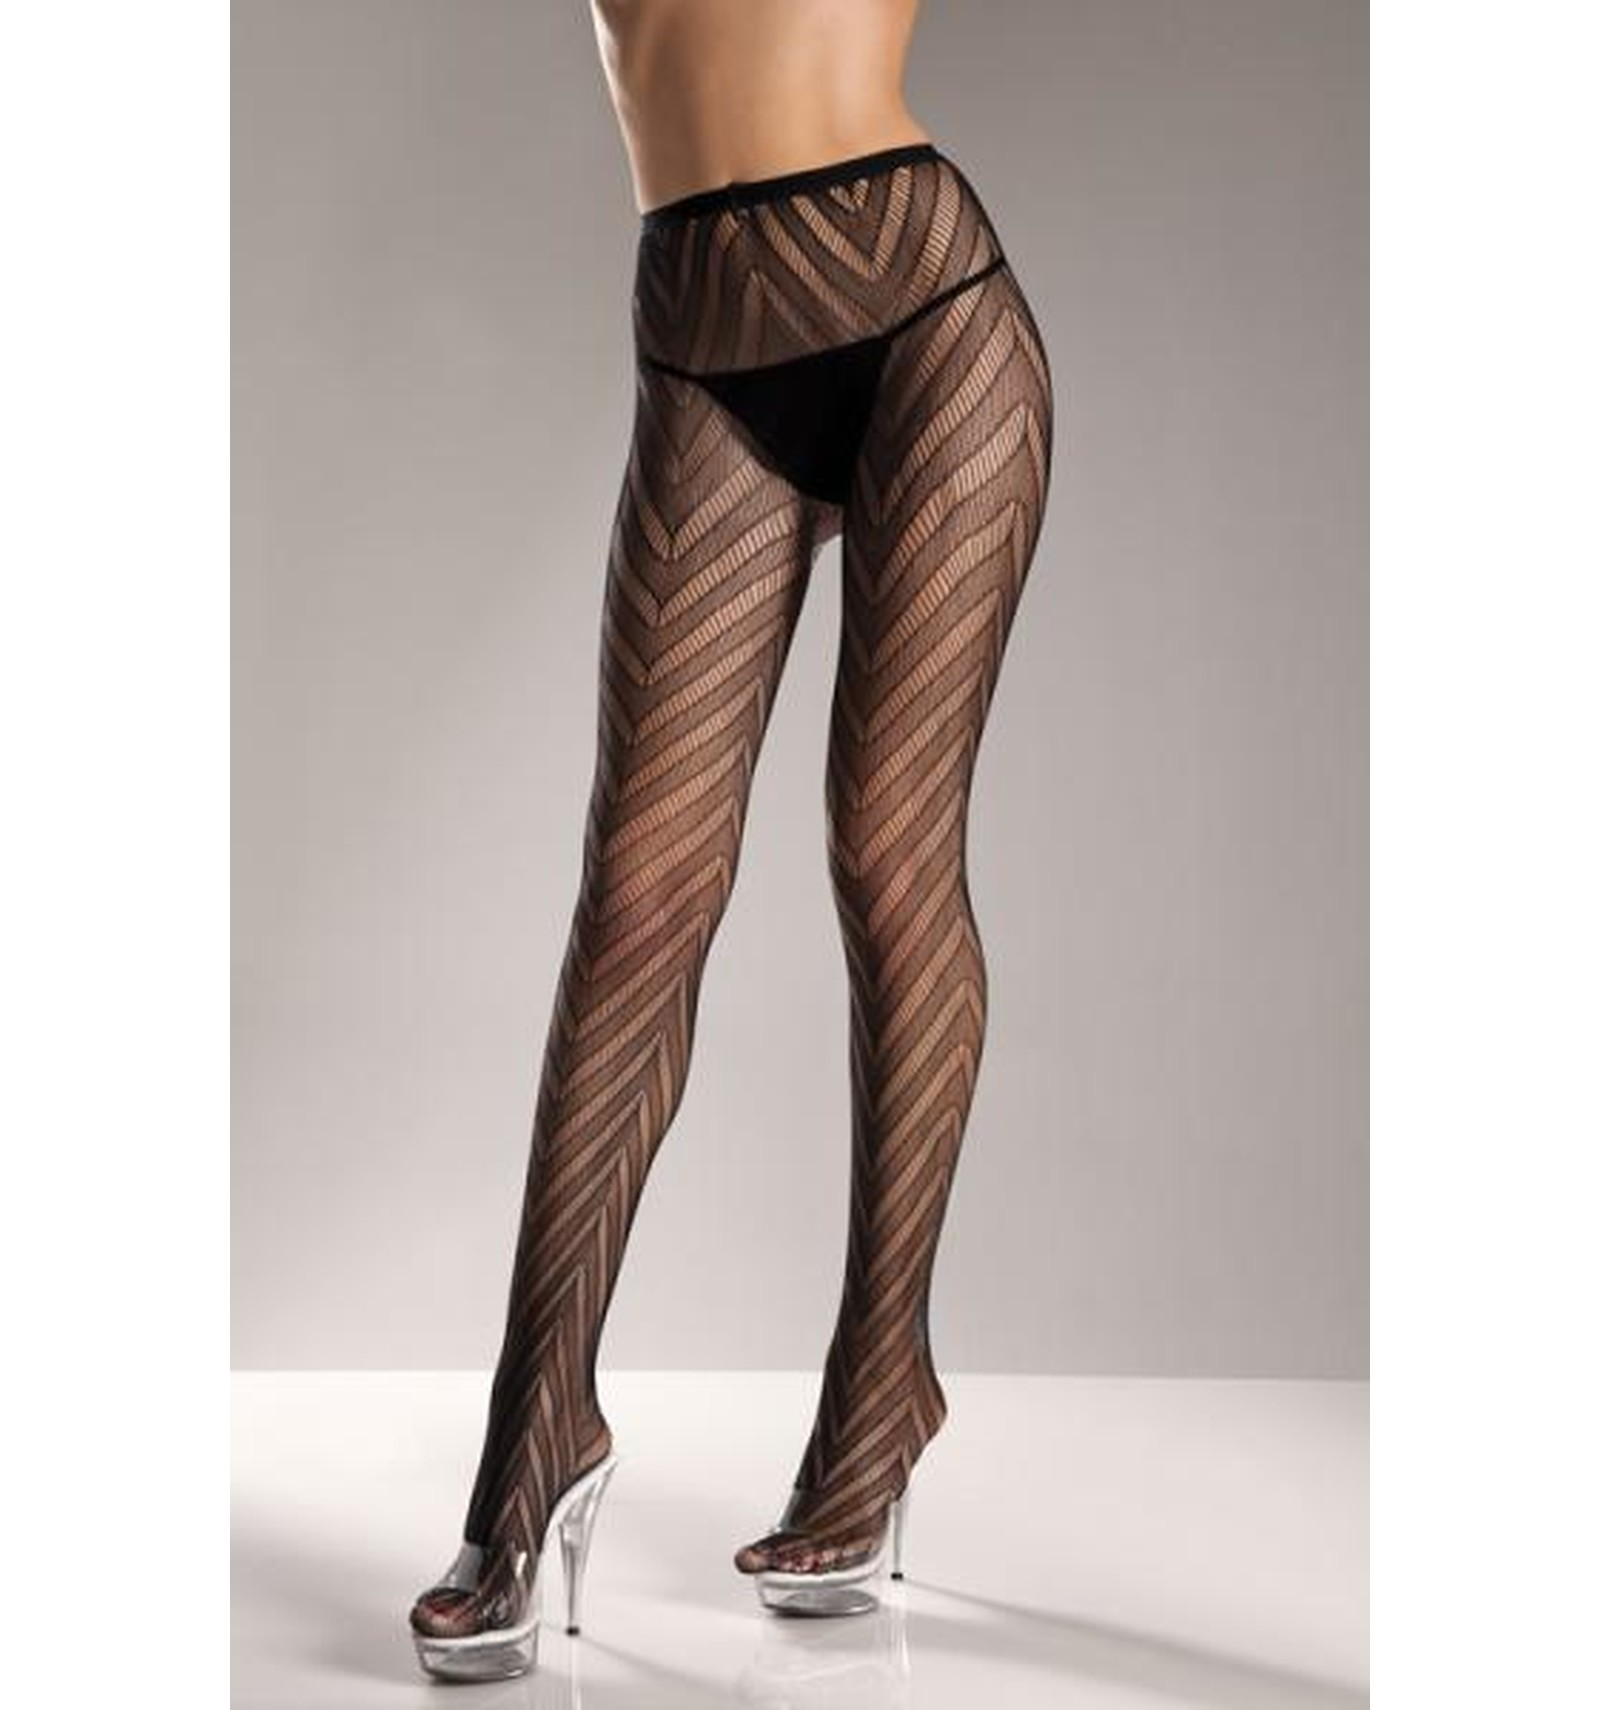 Wedding lace pantyhose in queen size